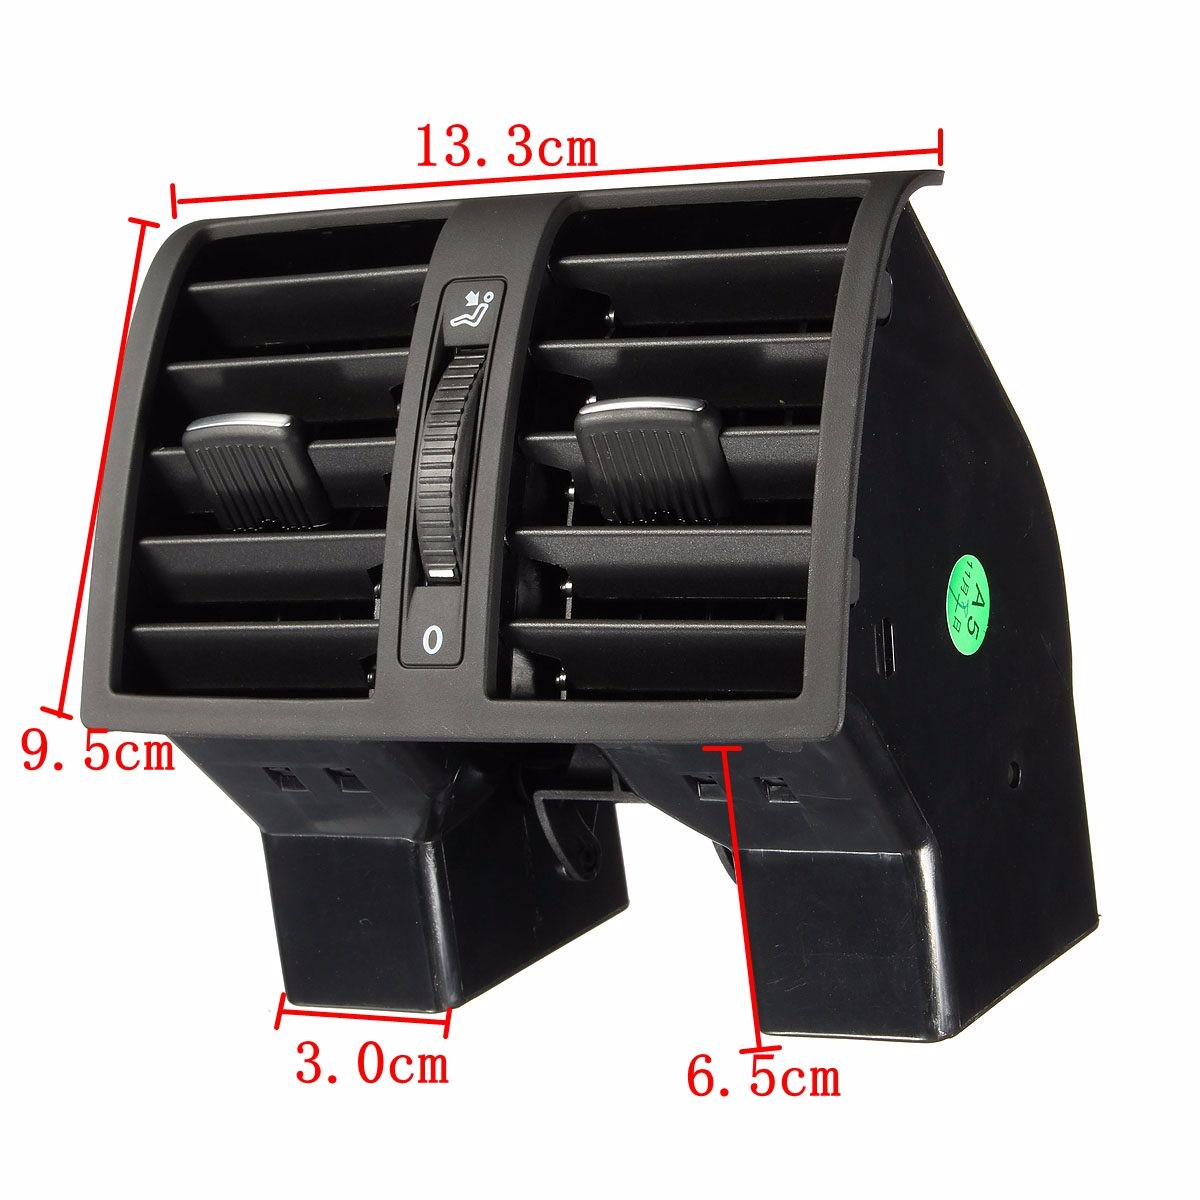 In Stock! Centre Console Rear AC Air Vent Outlet For VW Touran 2003-2015 Caddy 2004-2015 OEM Number 1T0819203